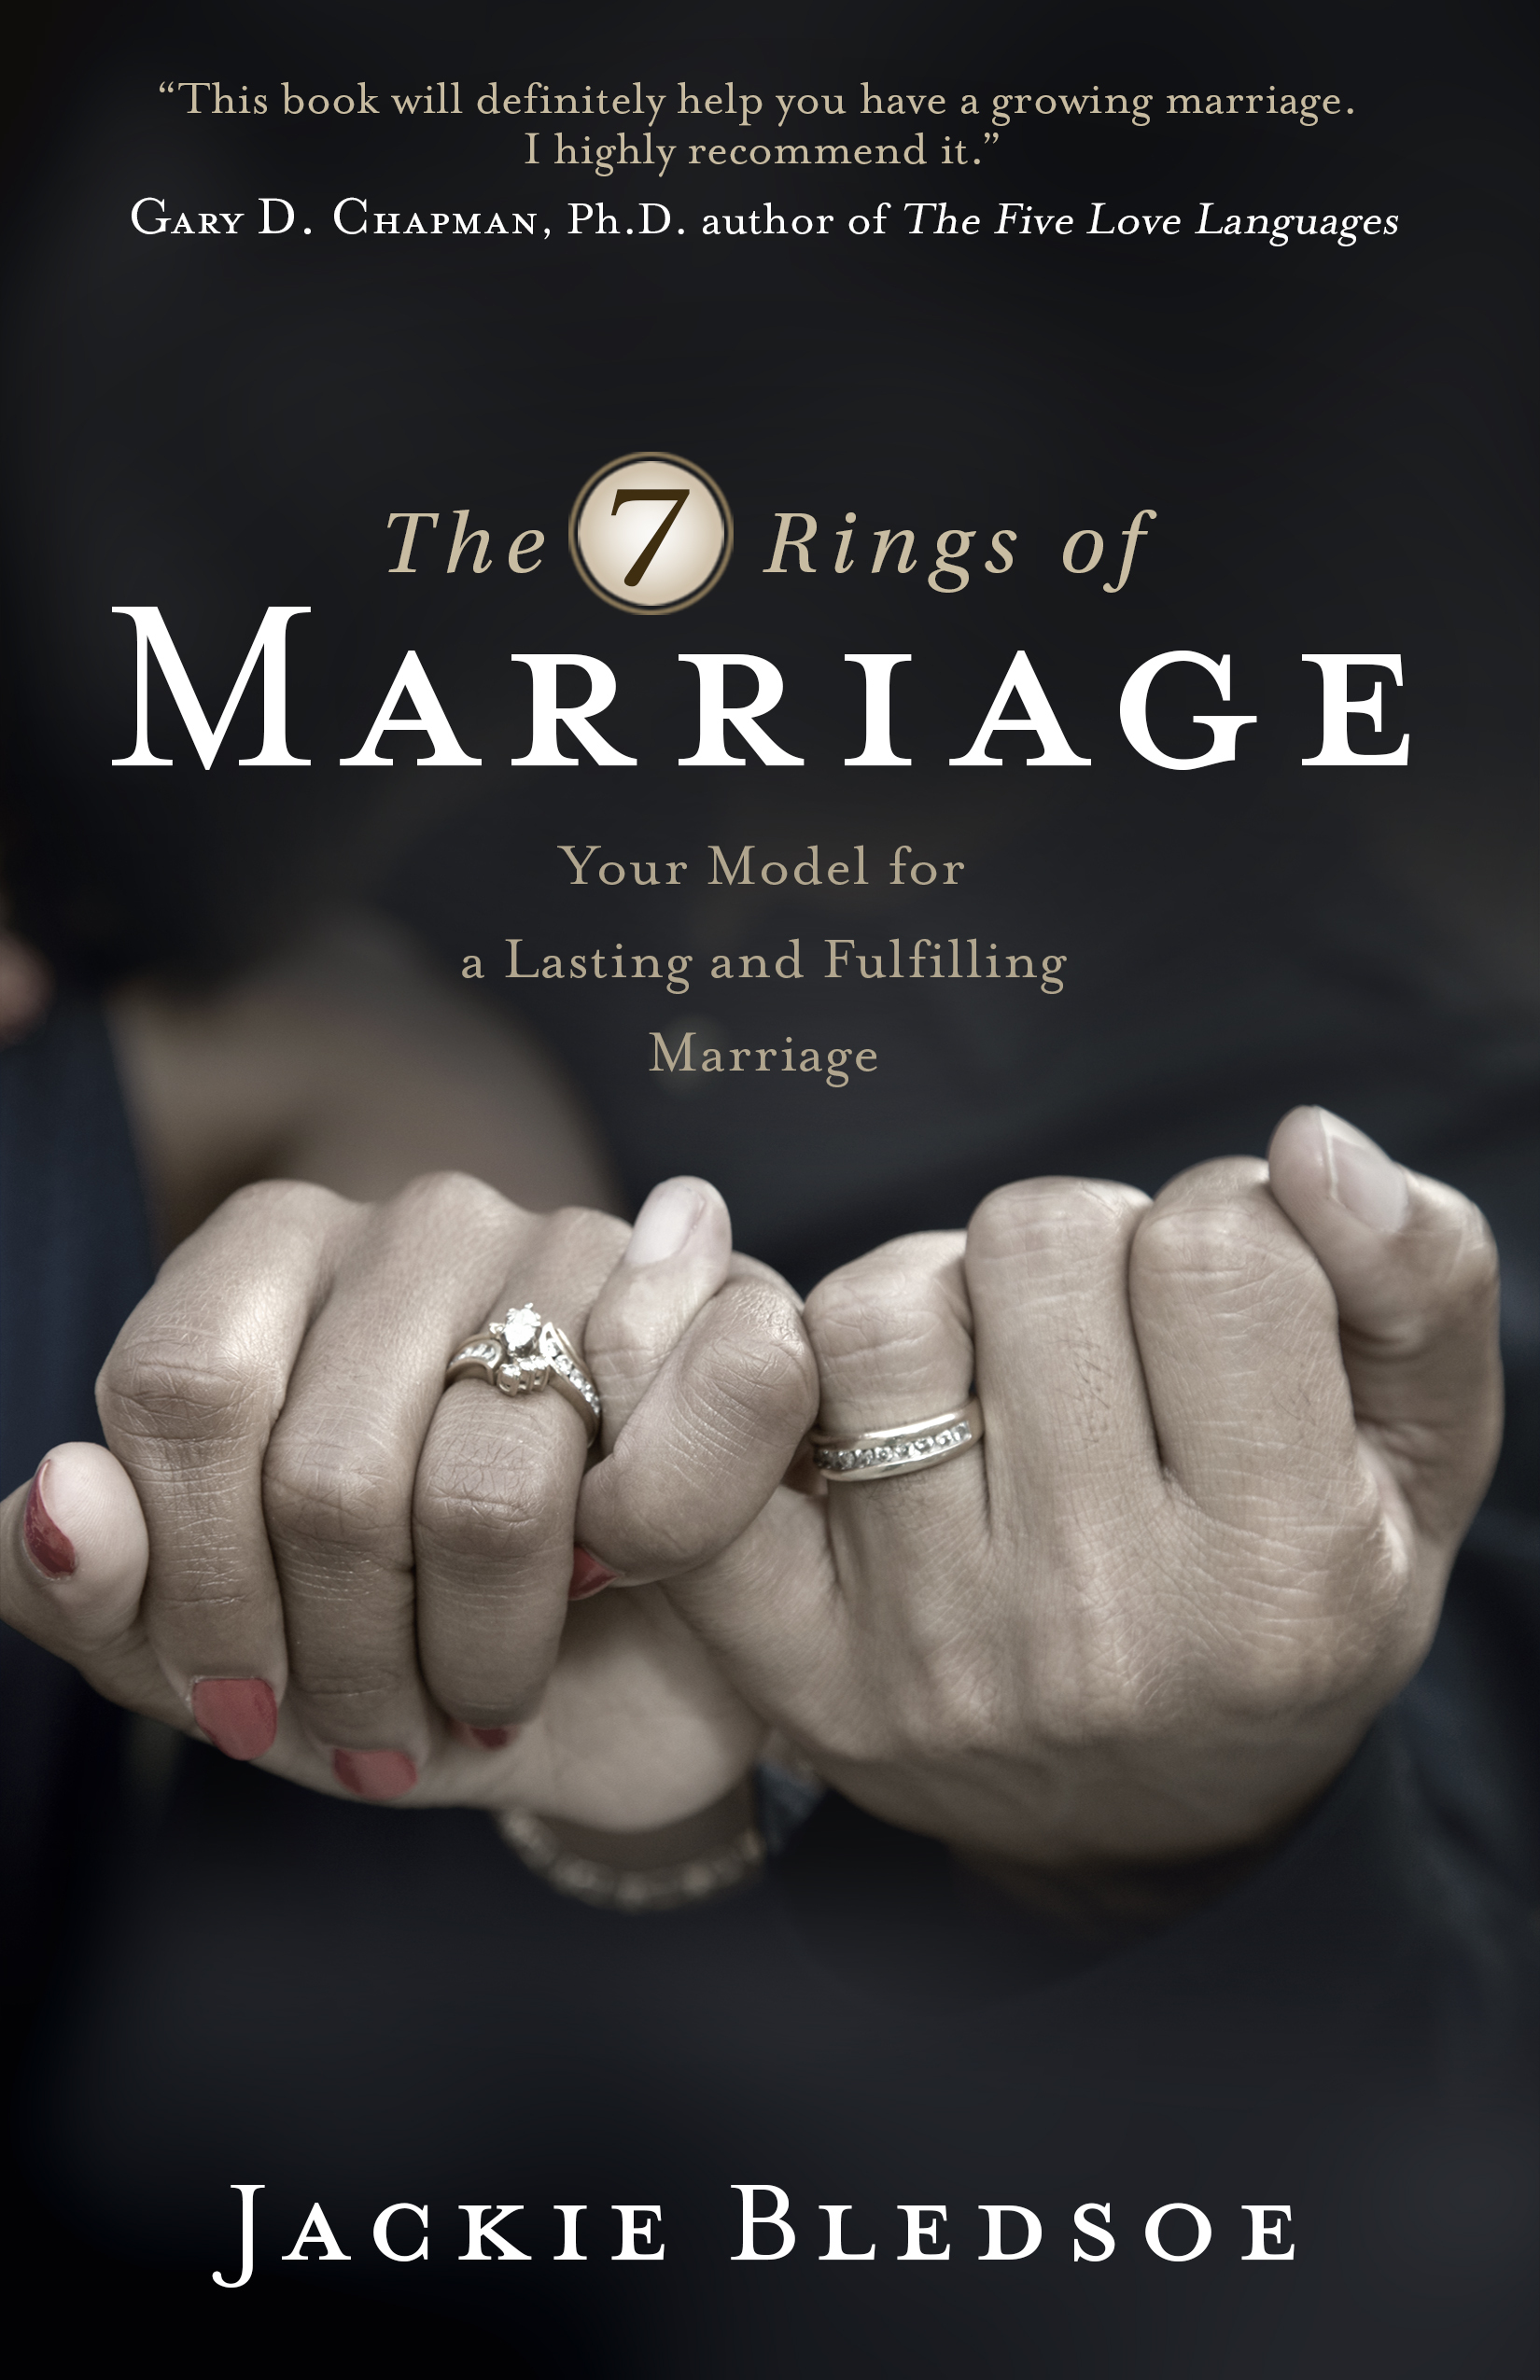 The Seven Rings of Marriage Your Model for a Lasting and Fulfilling Marriage